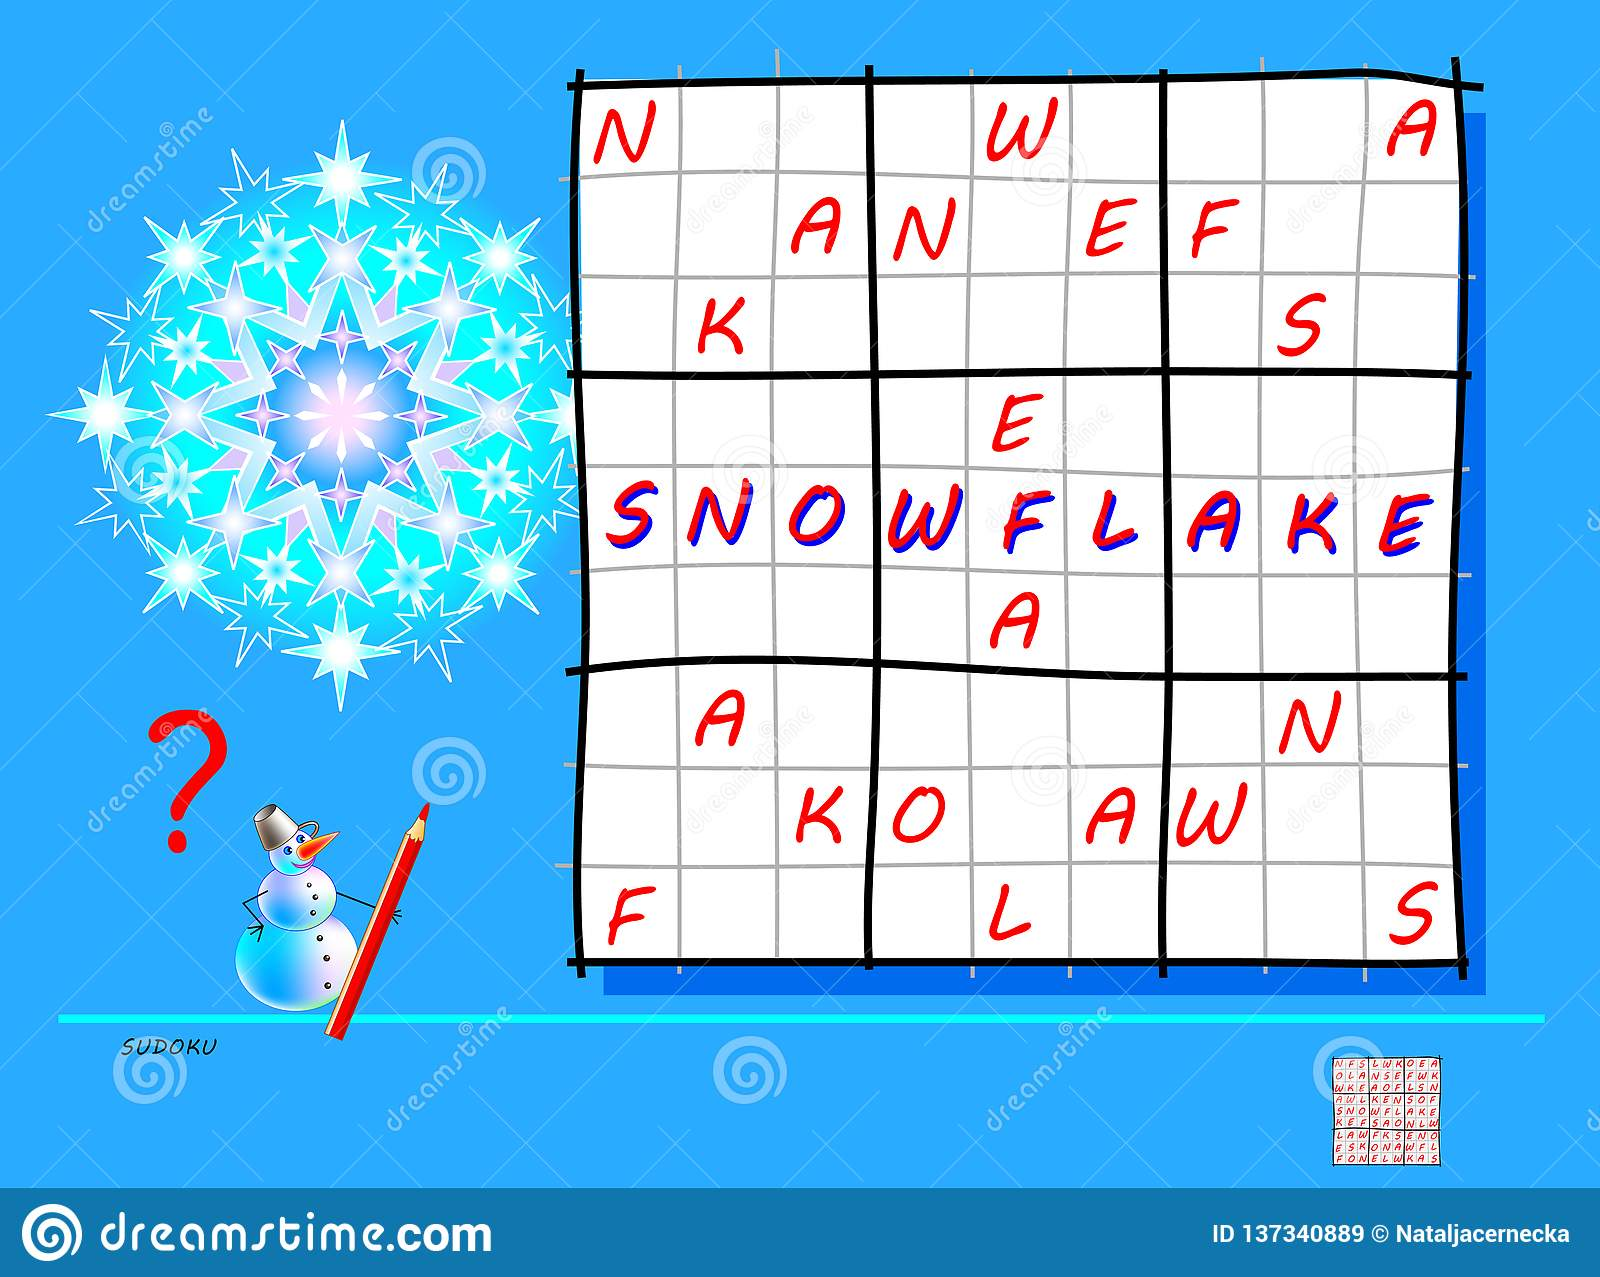 Logic Sudoku Game Need To Complete The Puzzle Using The